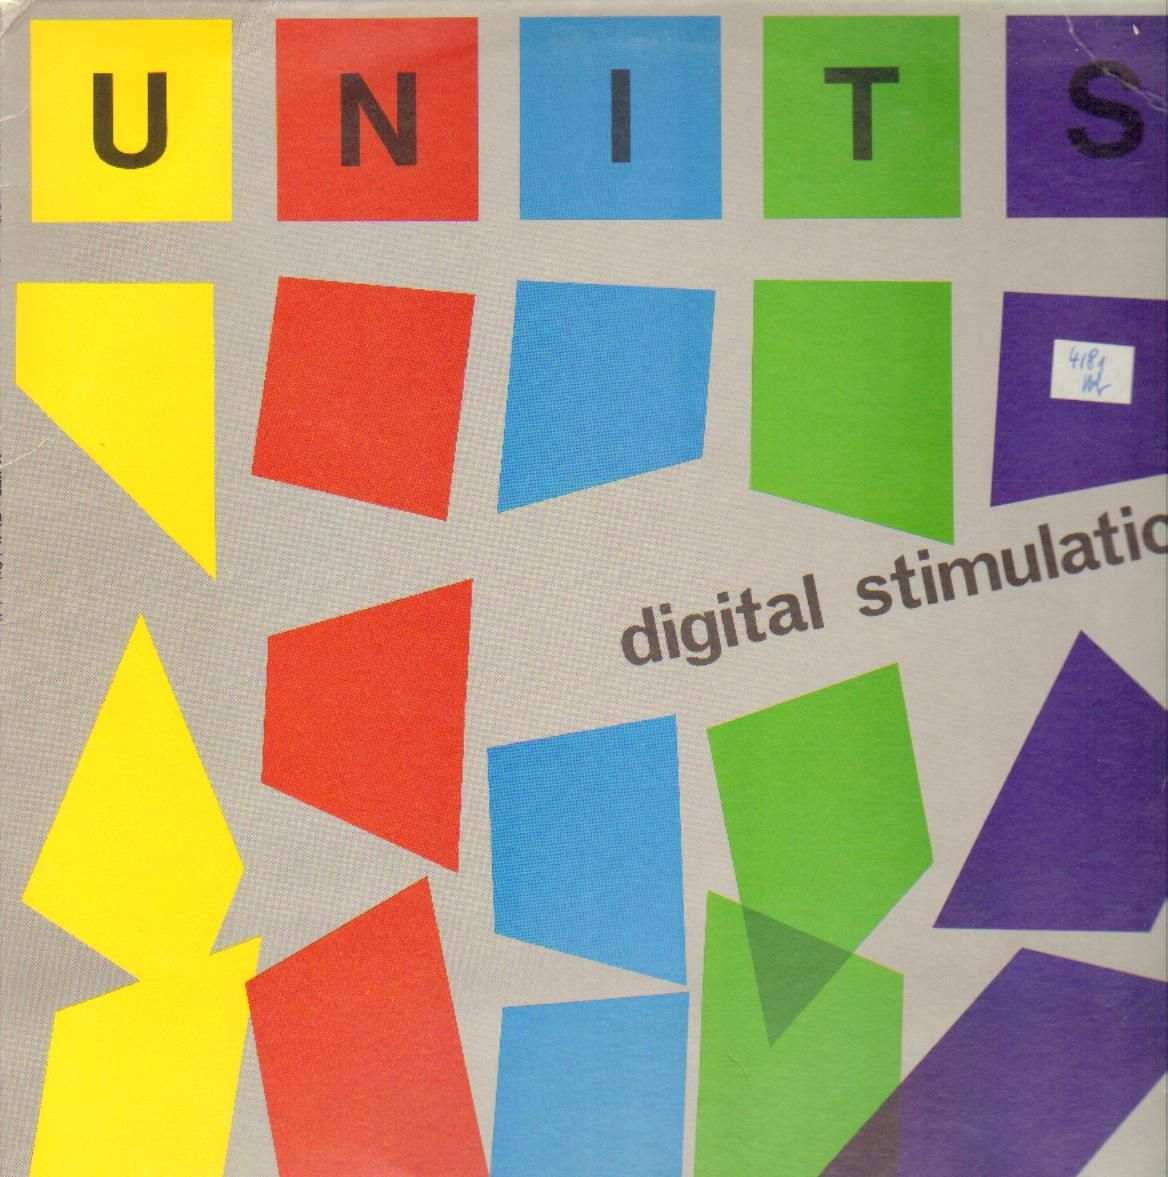 Fossil Records: The Units' Digital Stimulation